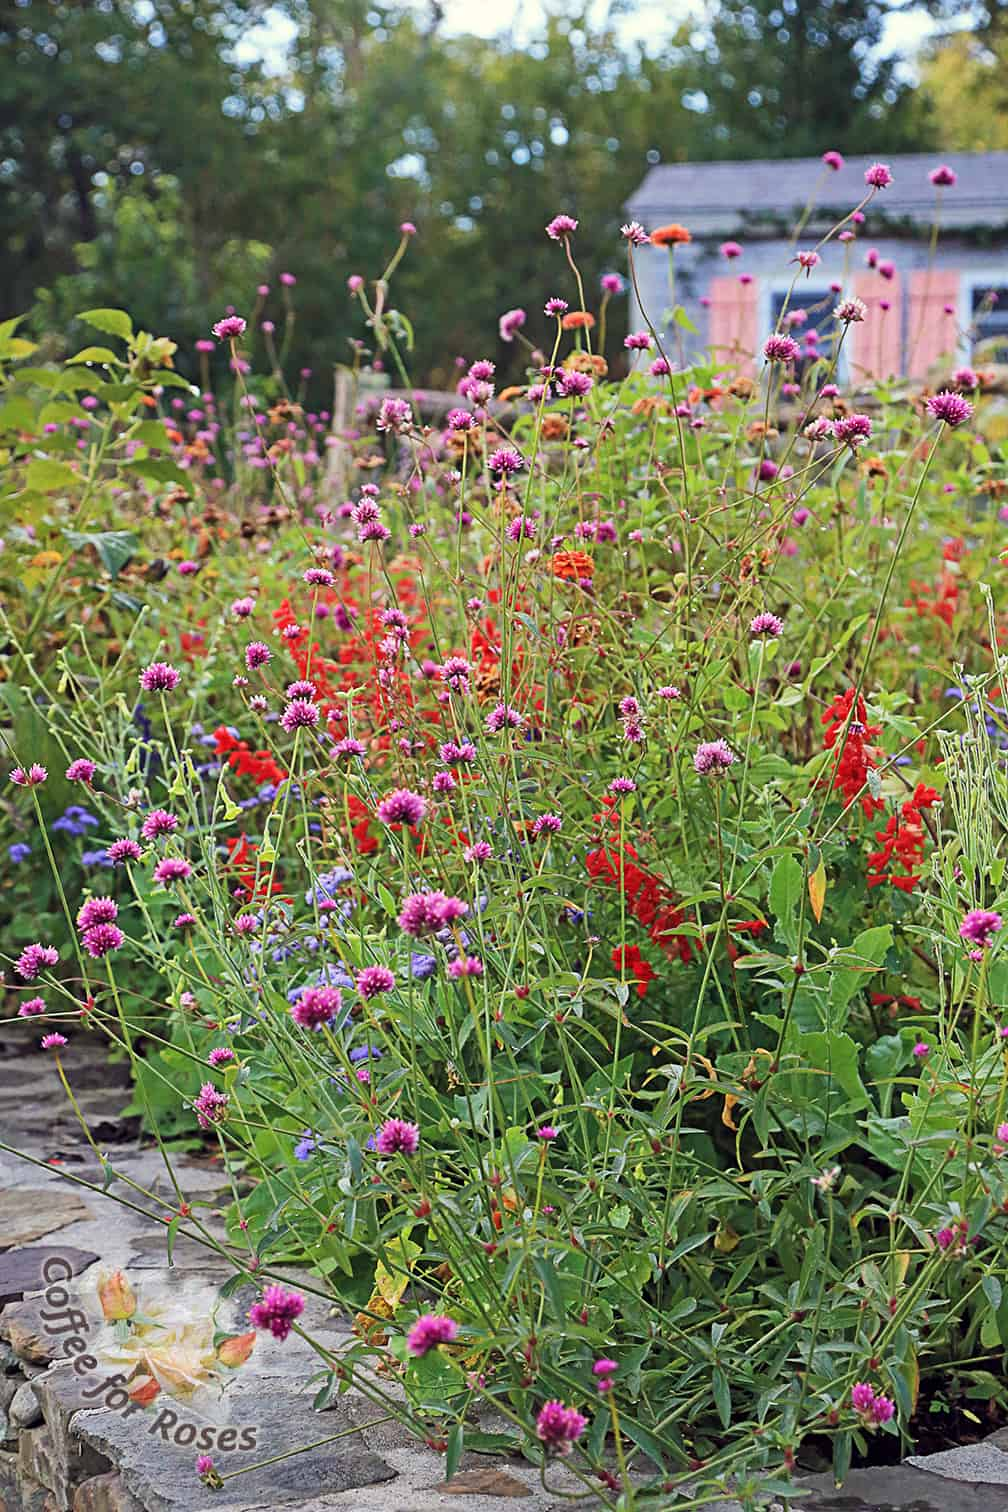 This past year I planted Annual Alley with a variety of six pack varieties along with others such as Gomphrena Fireworks that I grew from seed. I love the way the round pink flowers of the Gomphrena contrast with the spiky red salvia.